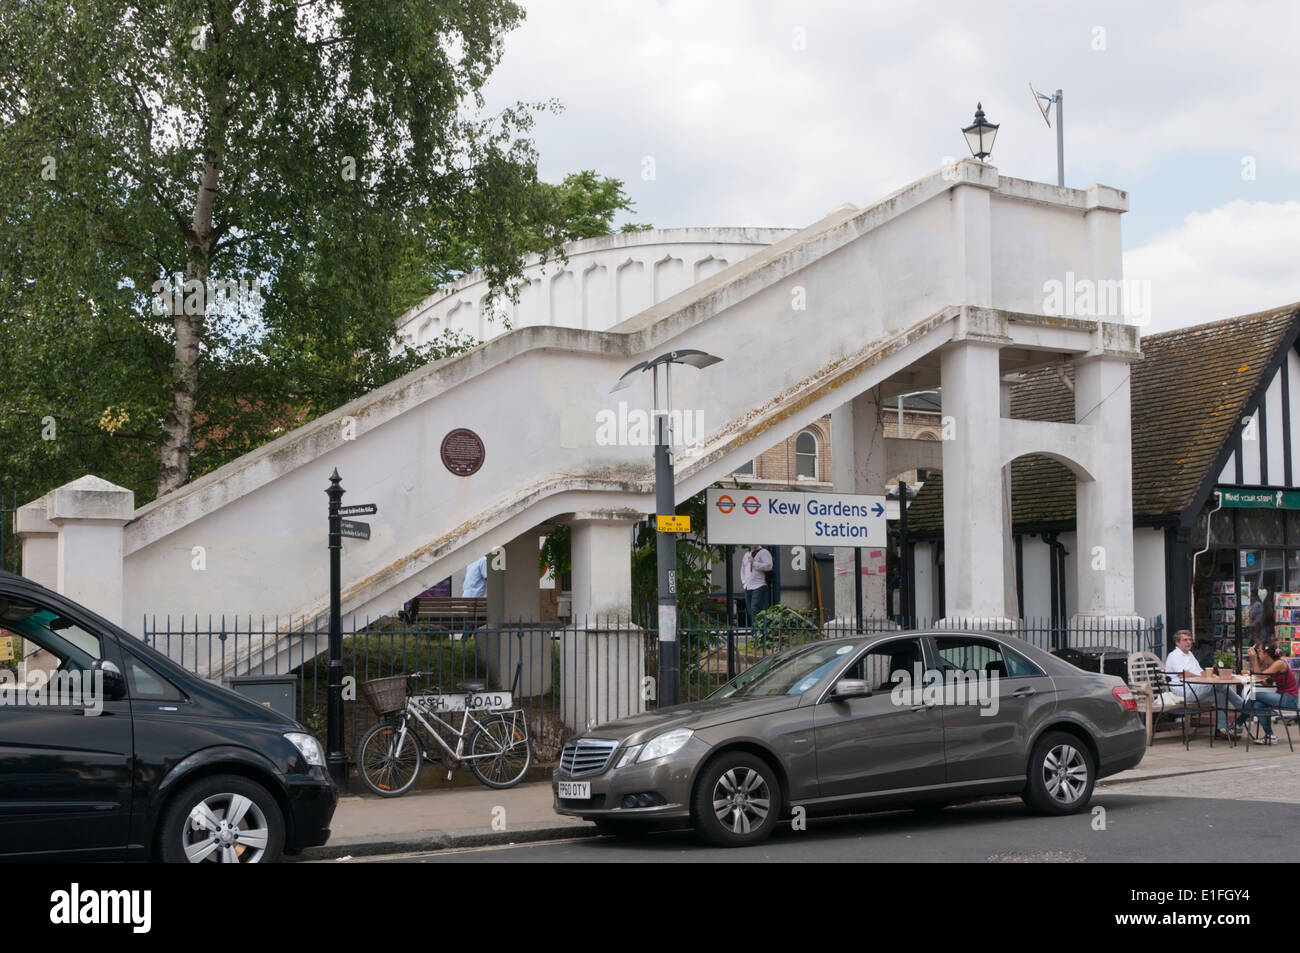 Historic reinforced concrete footbridge at Kew Gardens Station. - Stock Image